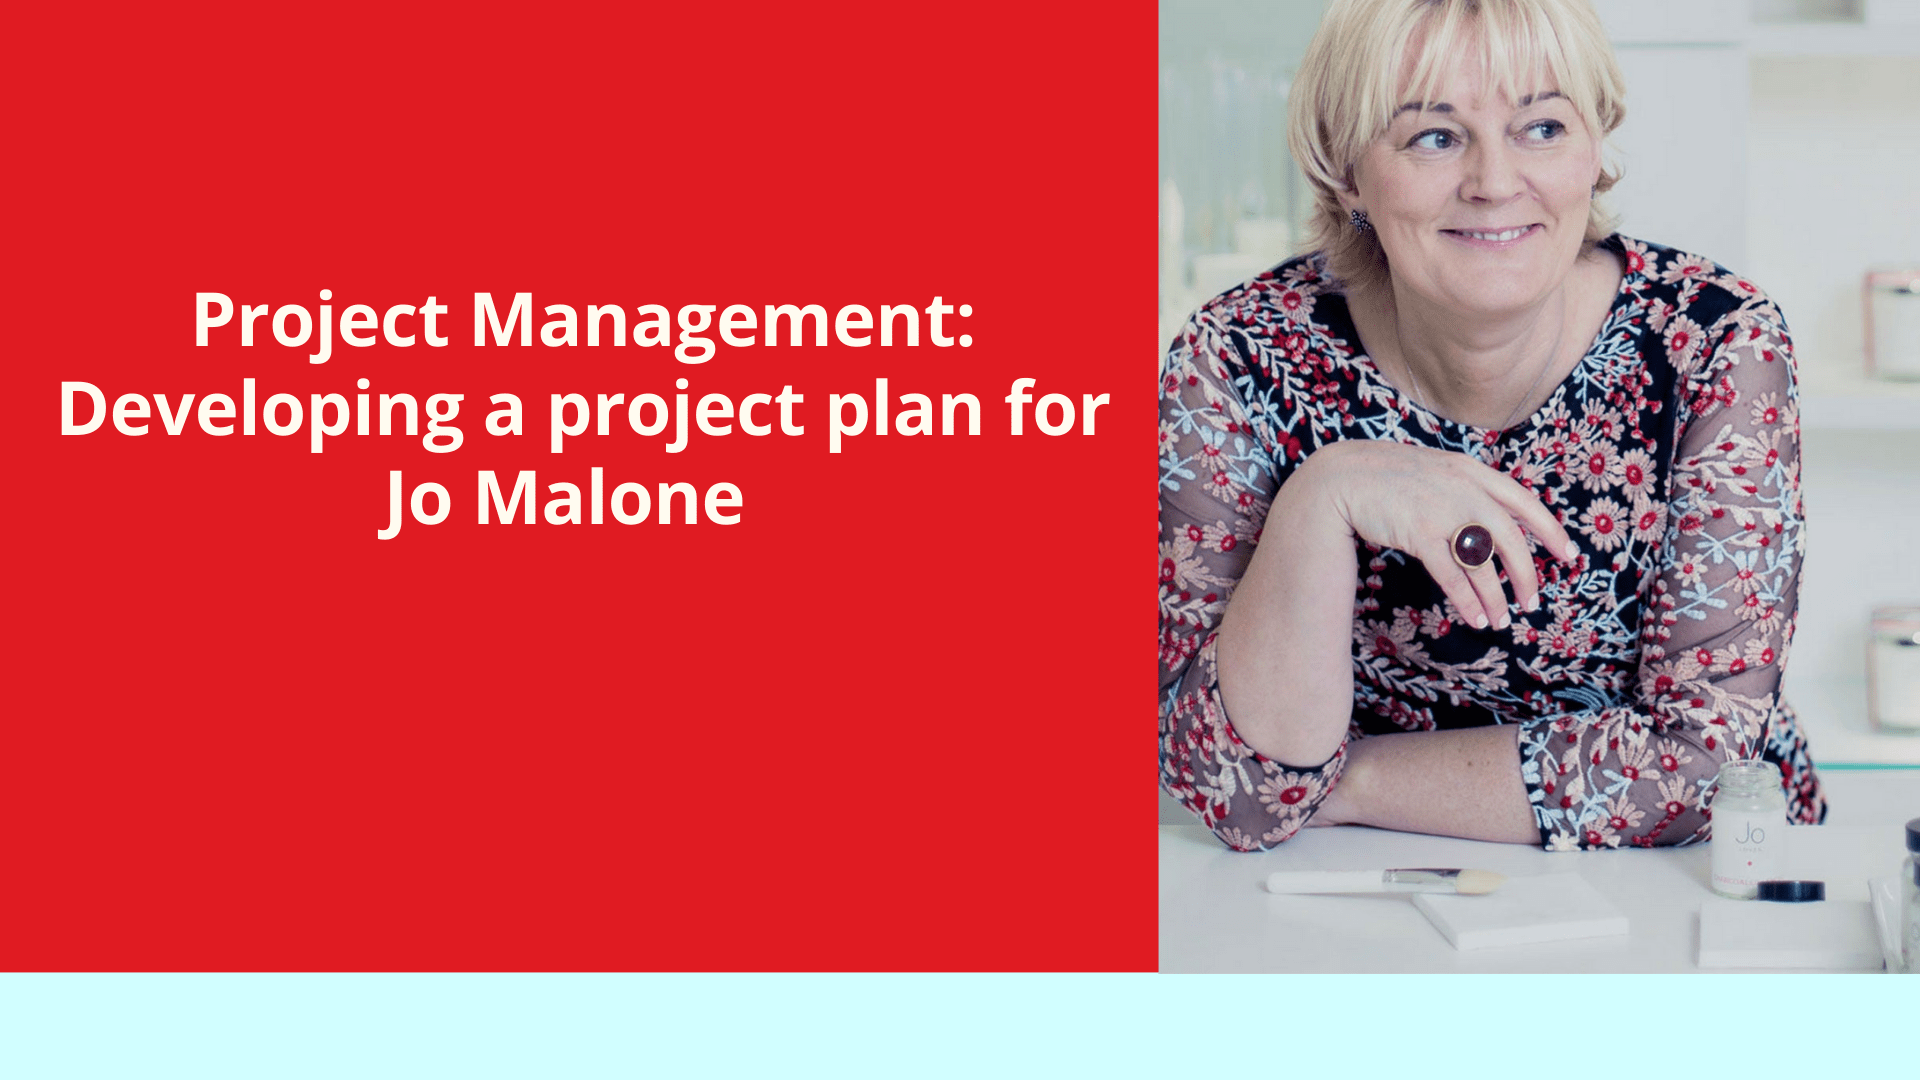 Project Management: Developing a project plan for Jo Malone